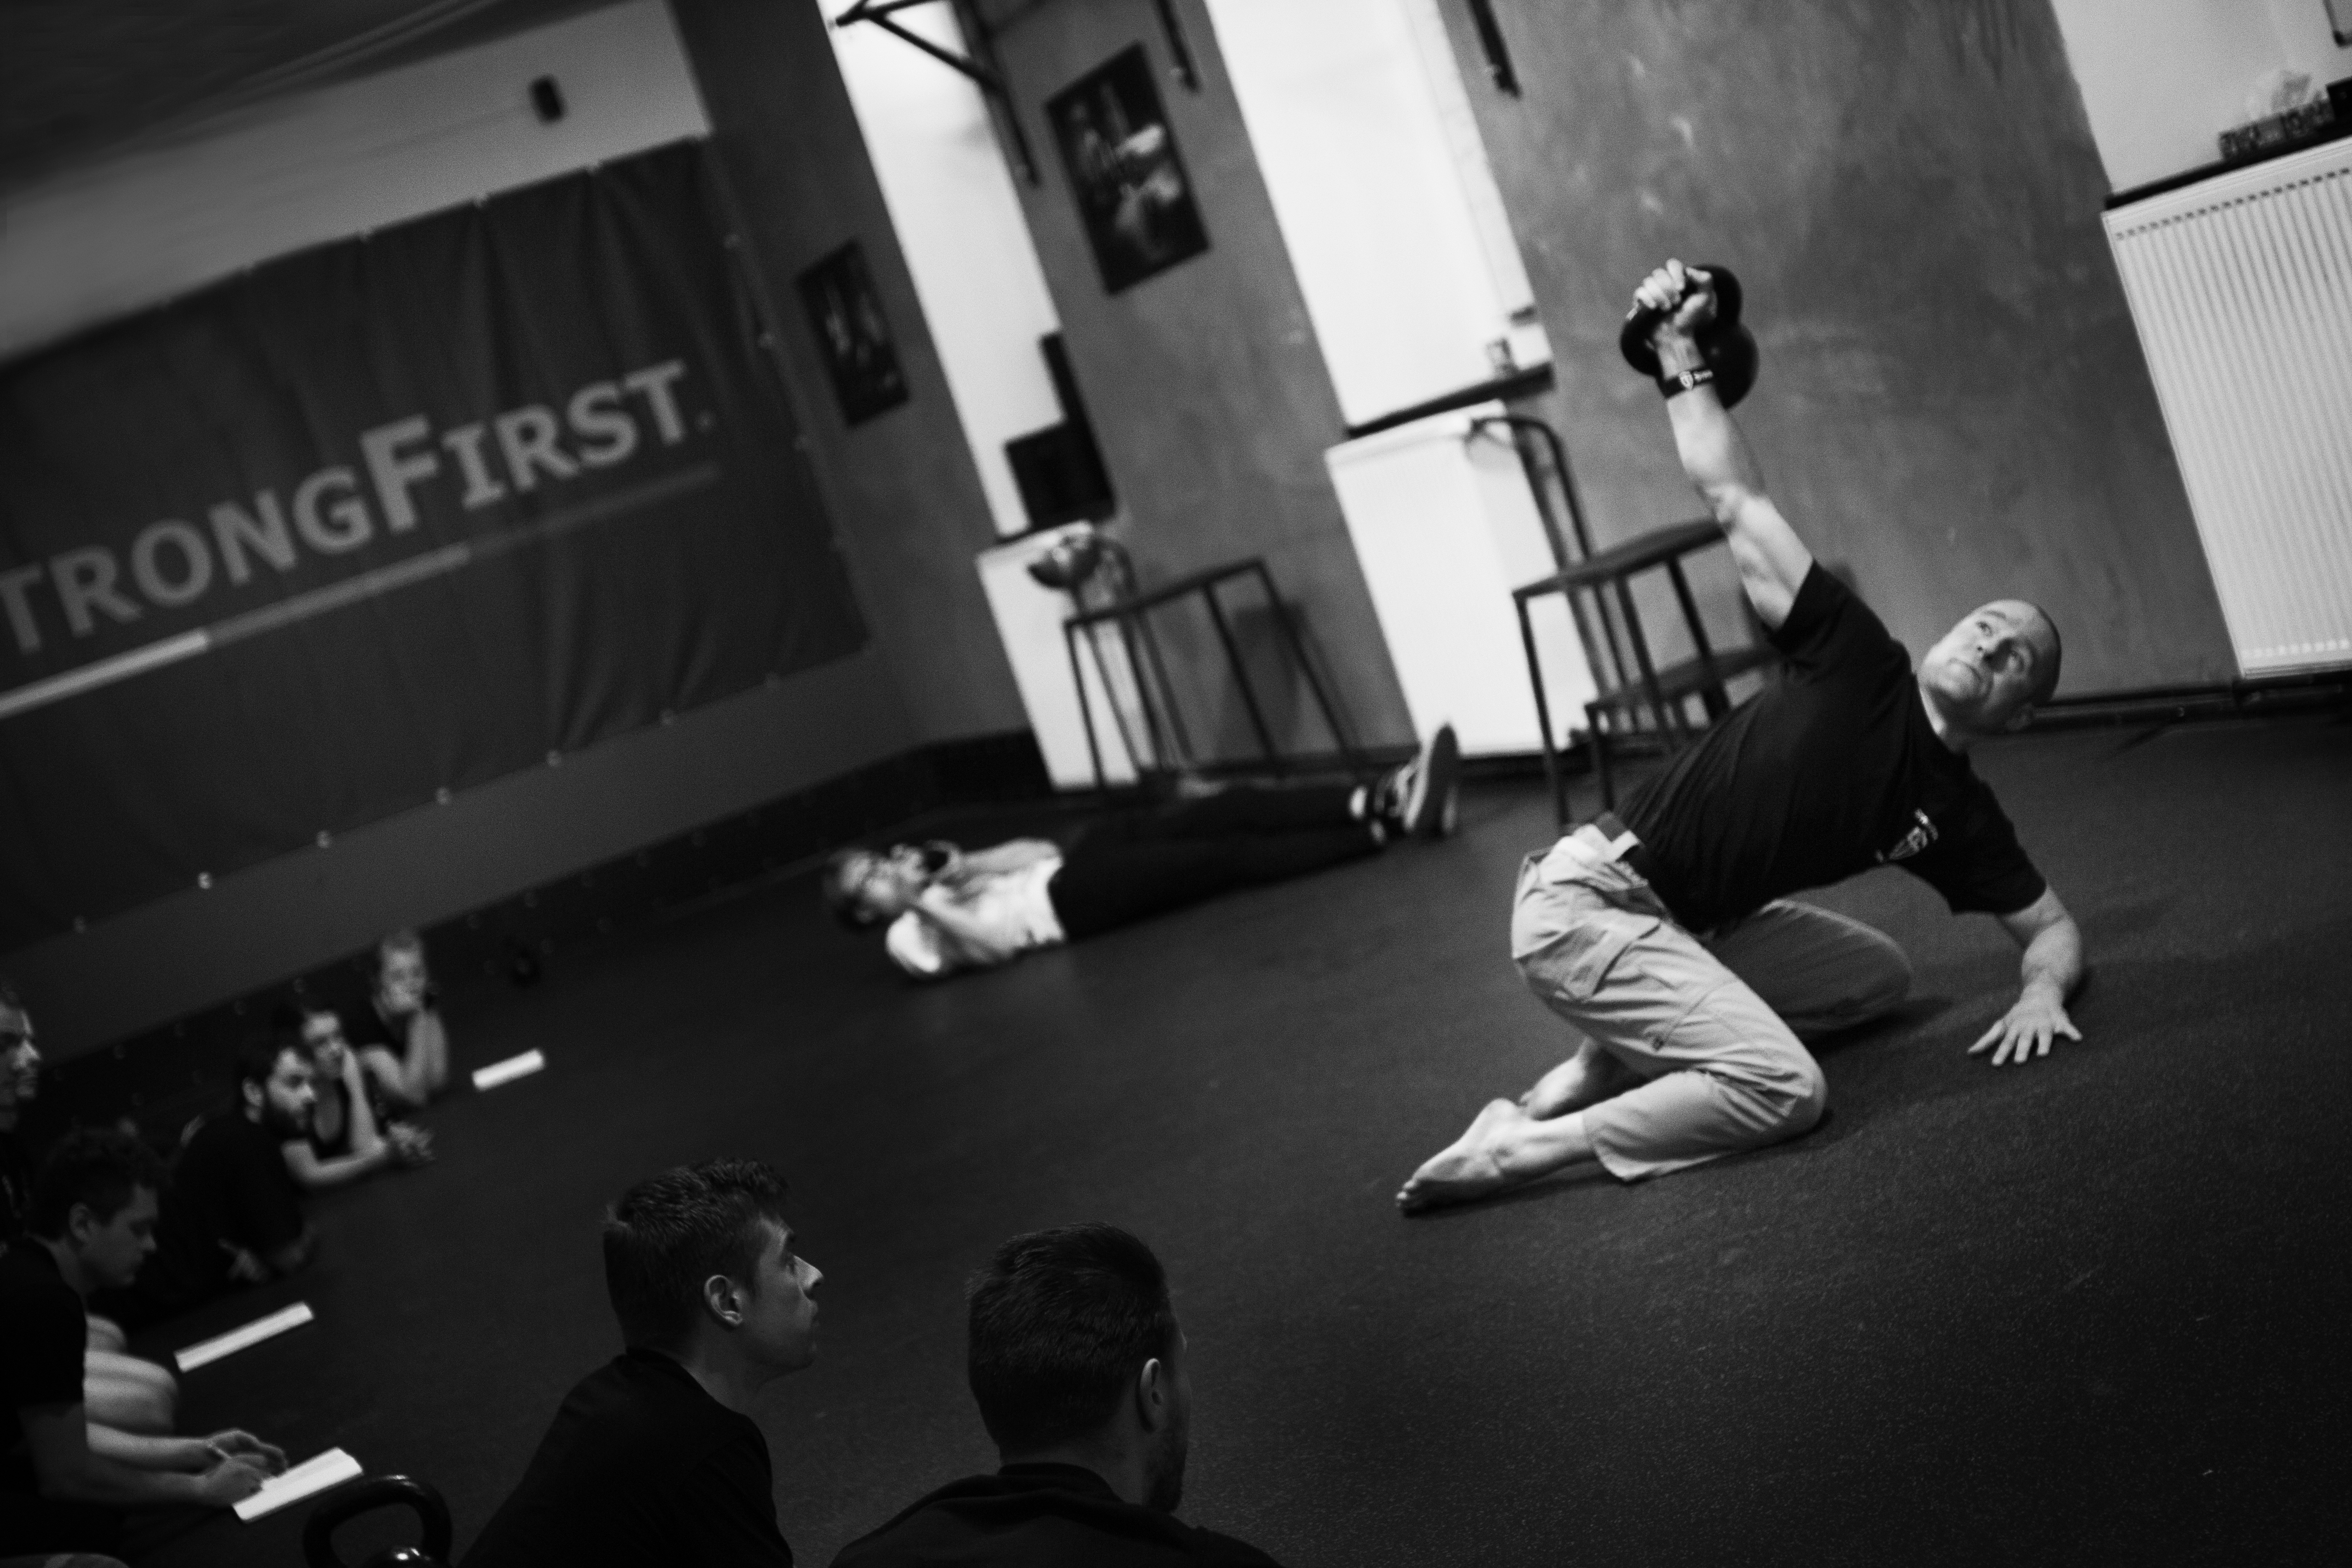 StrongFirst Resilient - informations générales